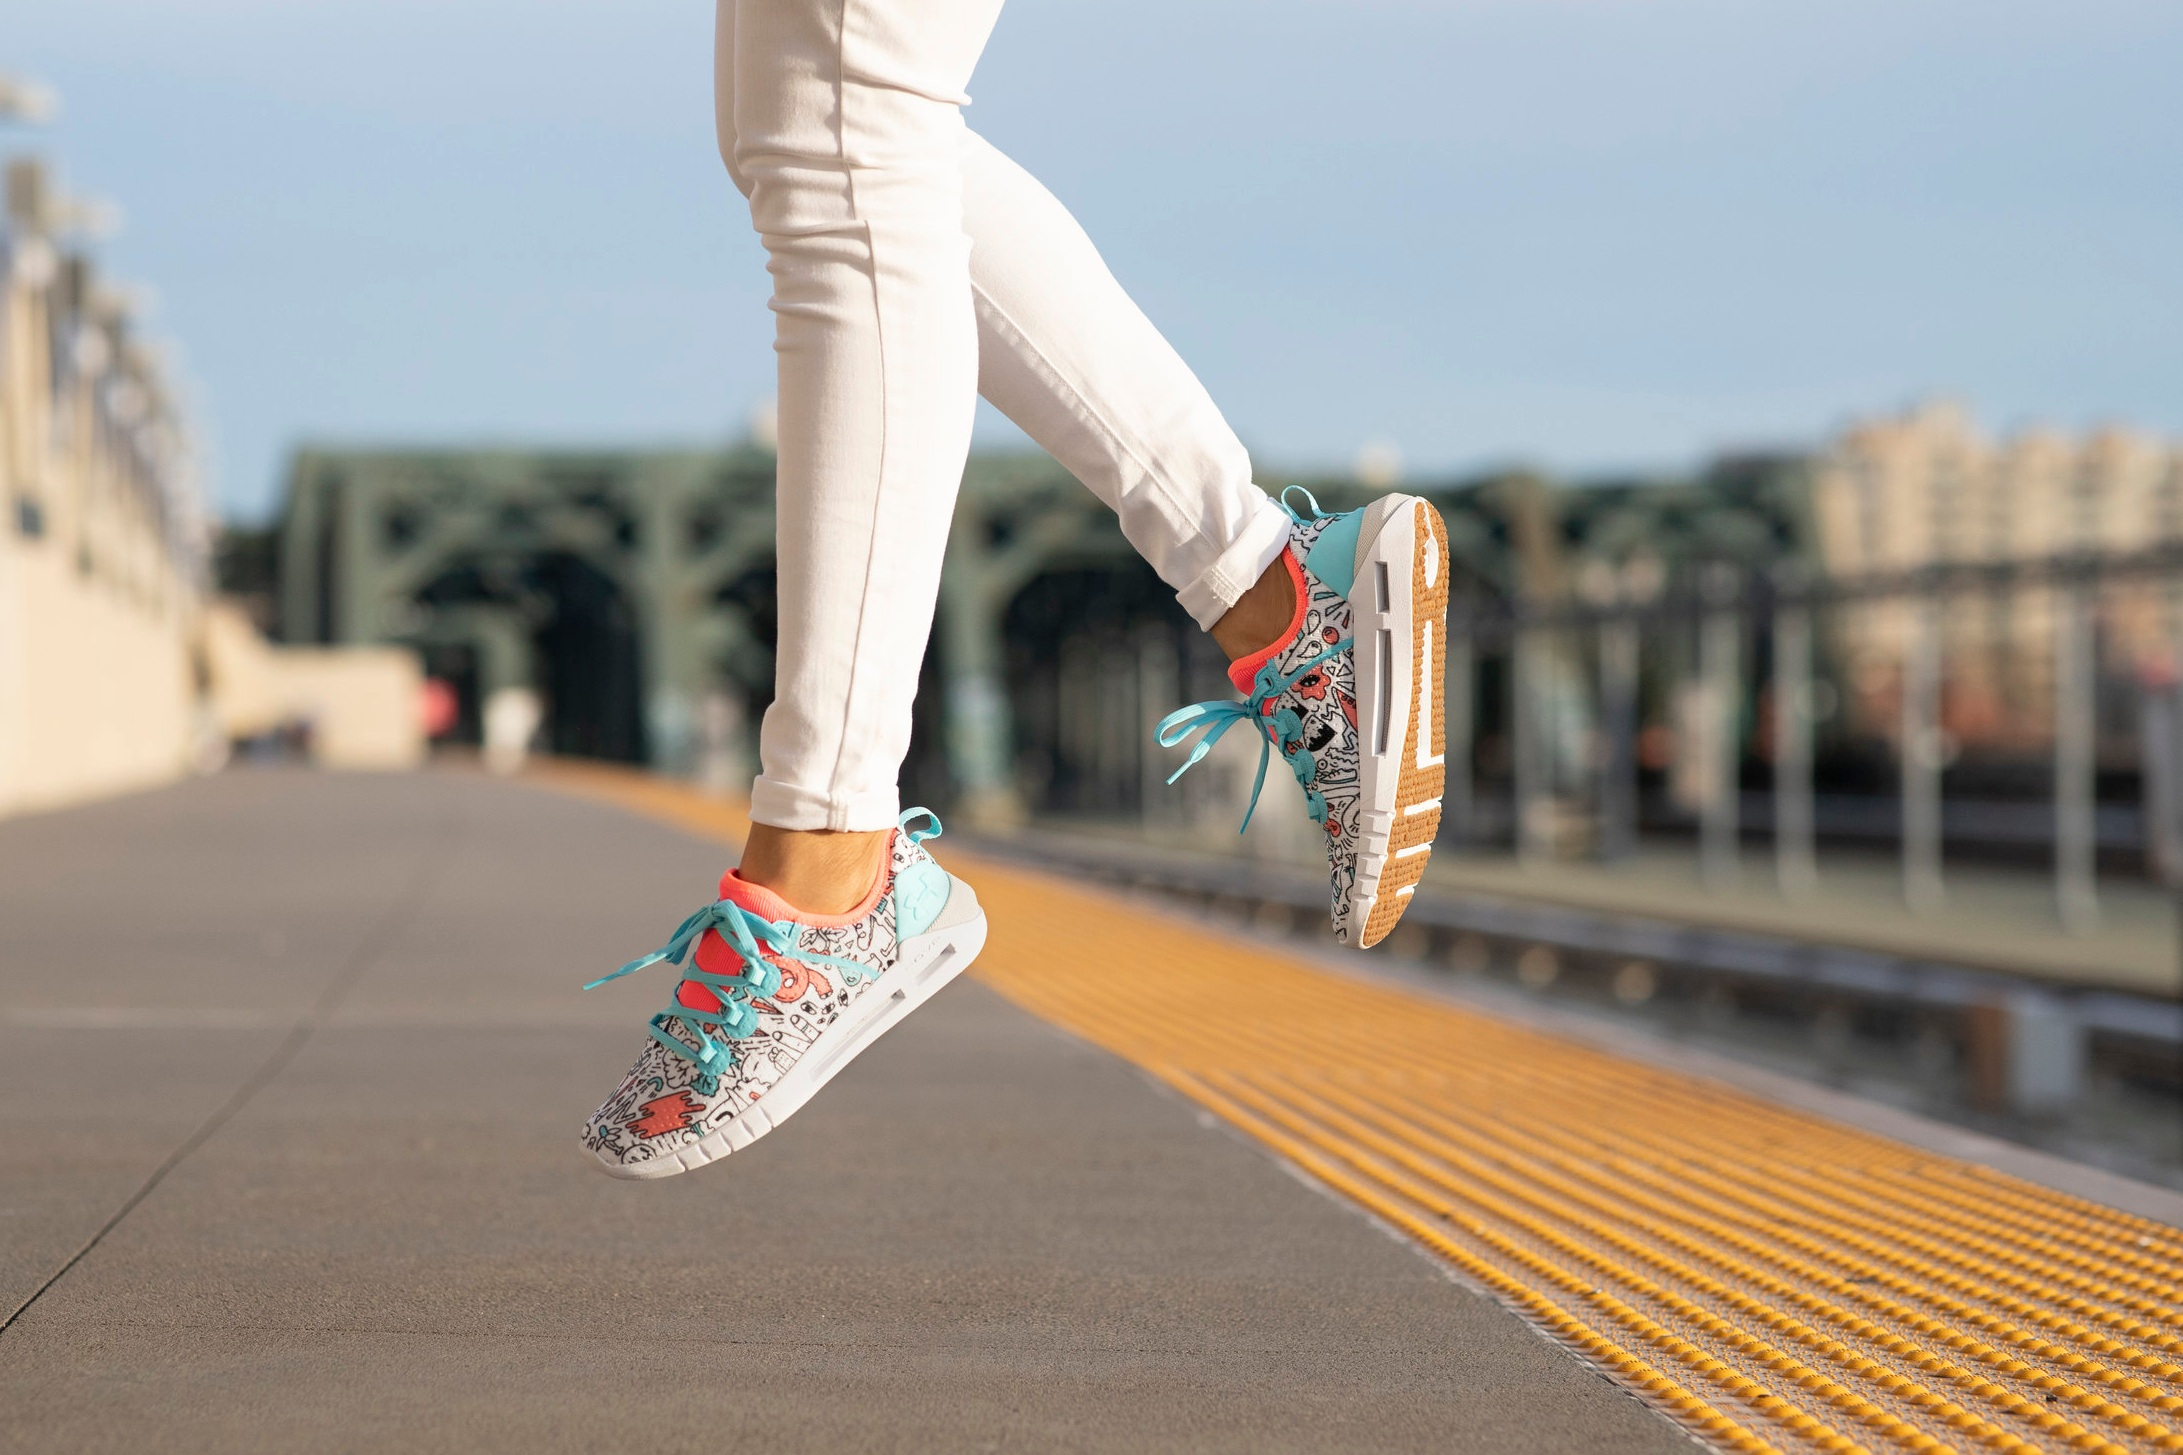 Art Direction of Icon Shoe Photoshoot - Client: Under Armour